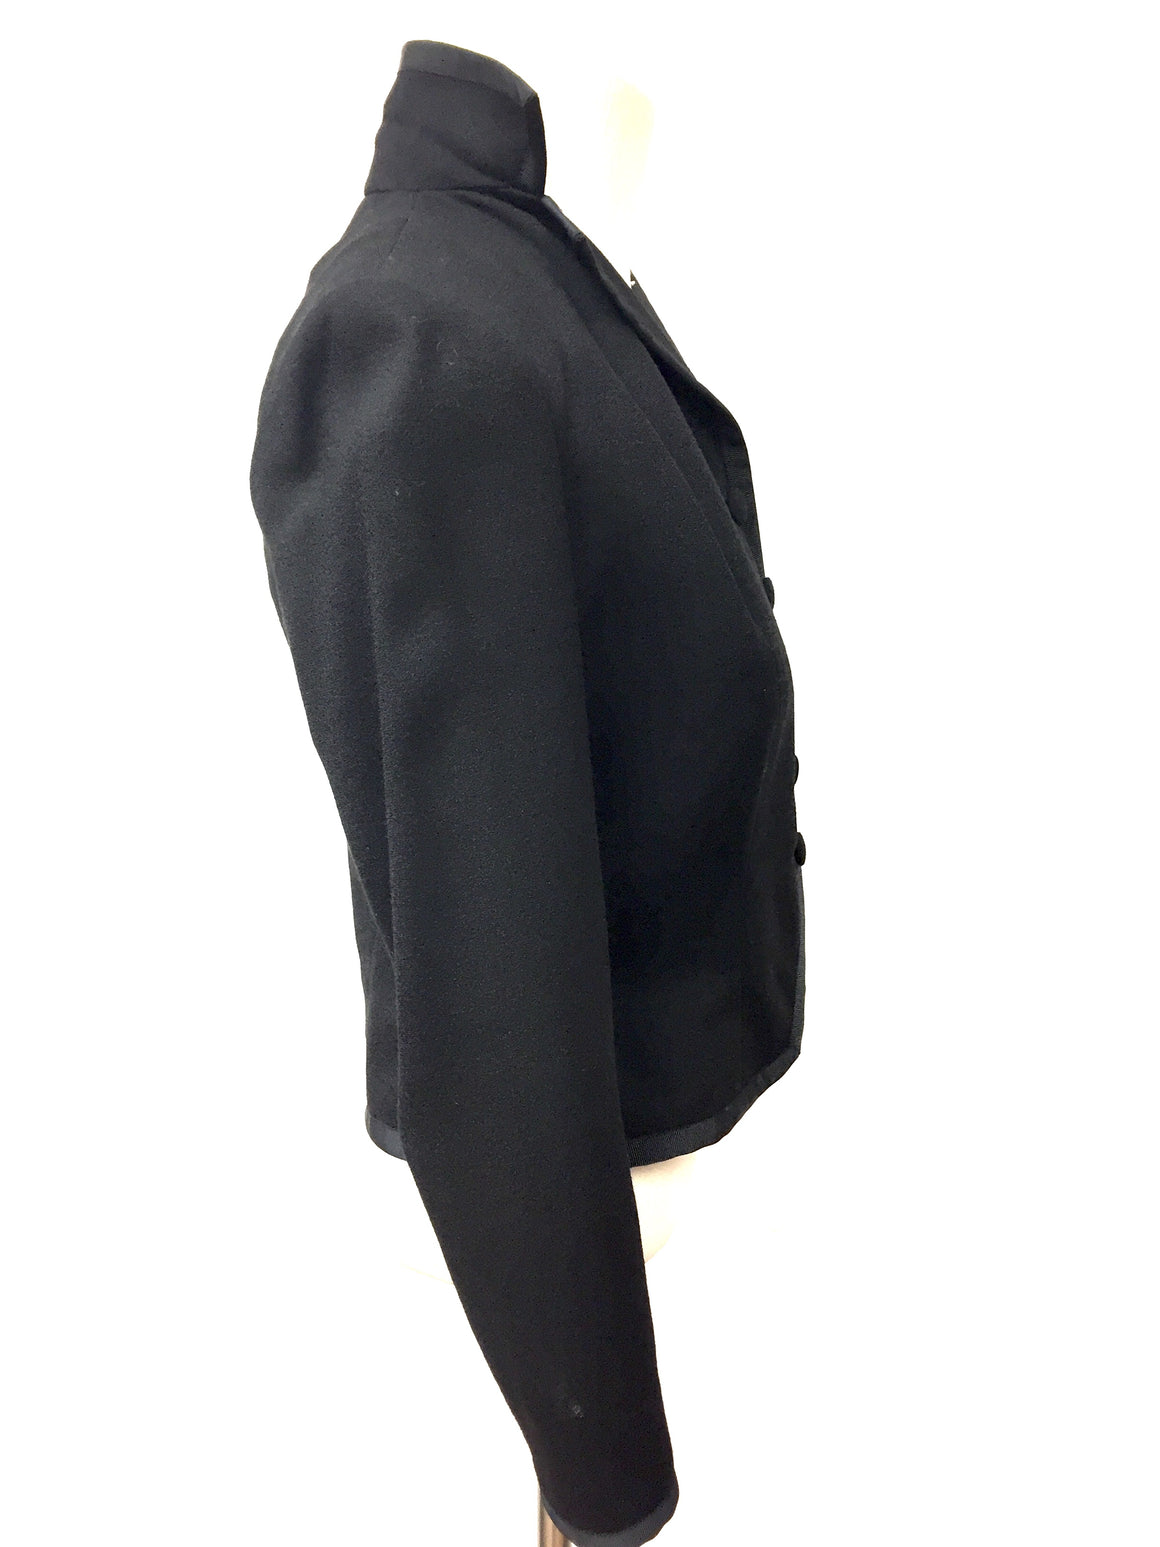 RALPH LAUREN Purple Label Black Wool Tuxedo Style Cropped Dress Jacket  Size: 4 - Small